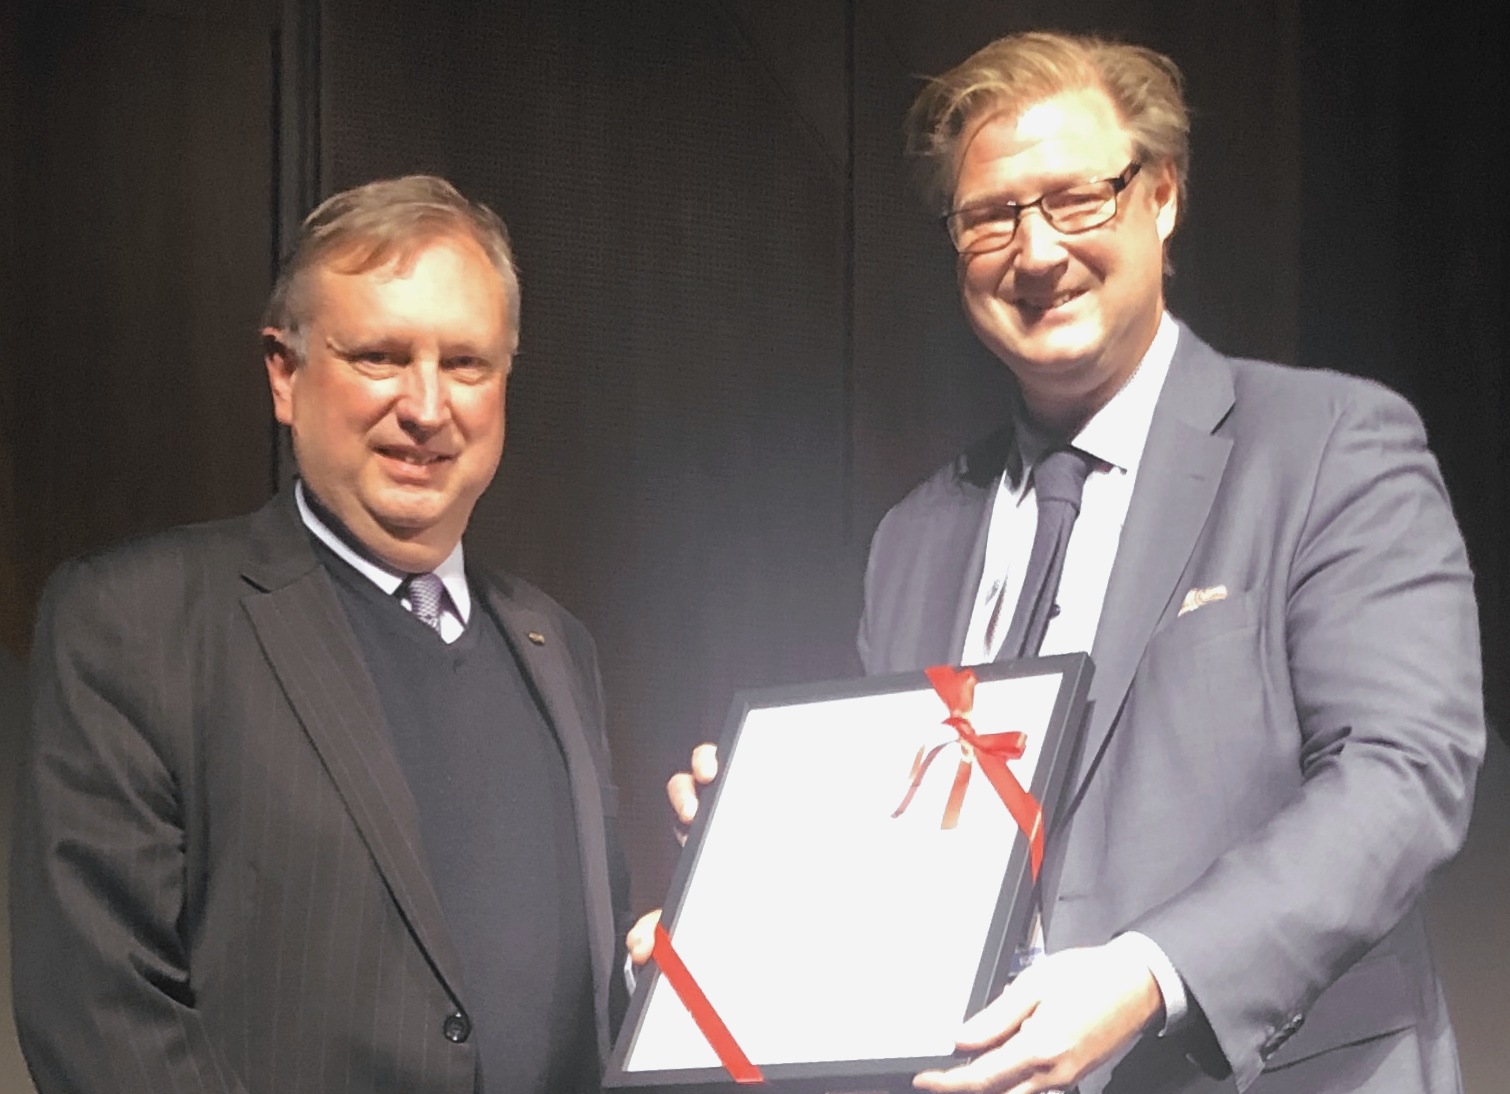 Professor Murray Scott (left) receiving his certificate from and the ICCM President, Professor Leif Asp (left).